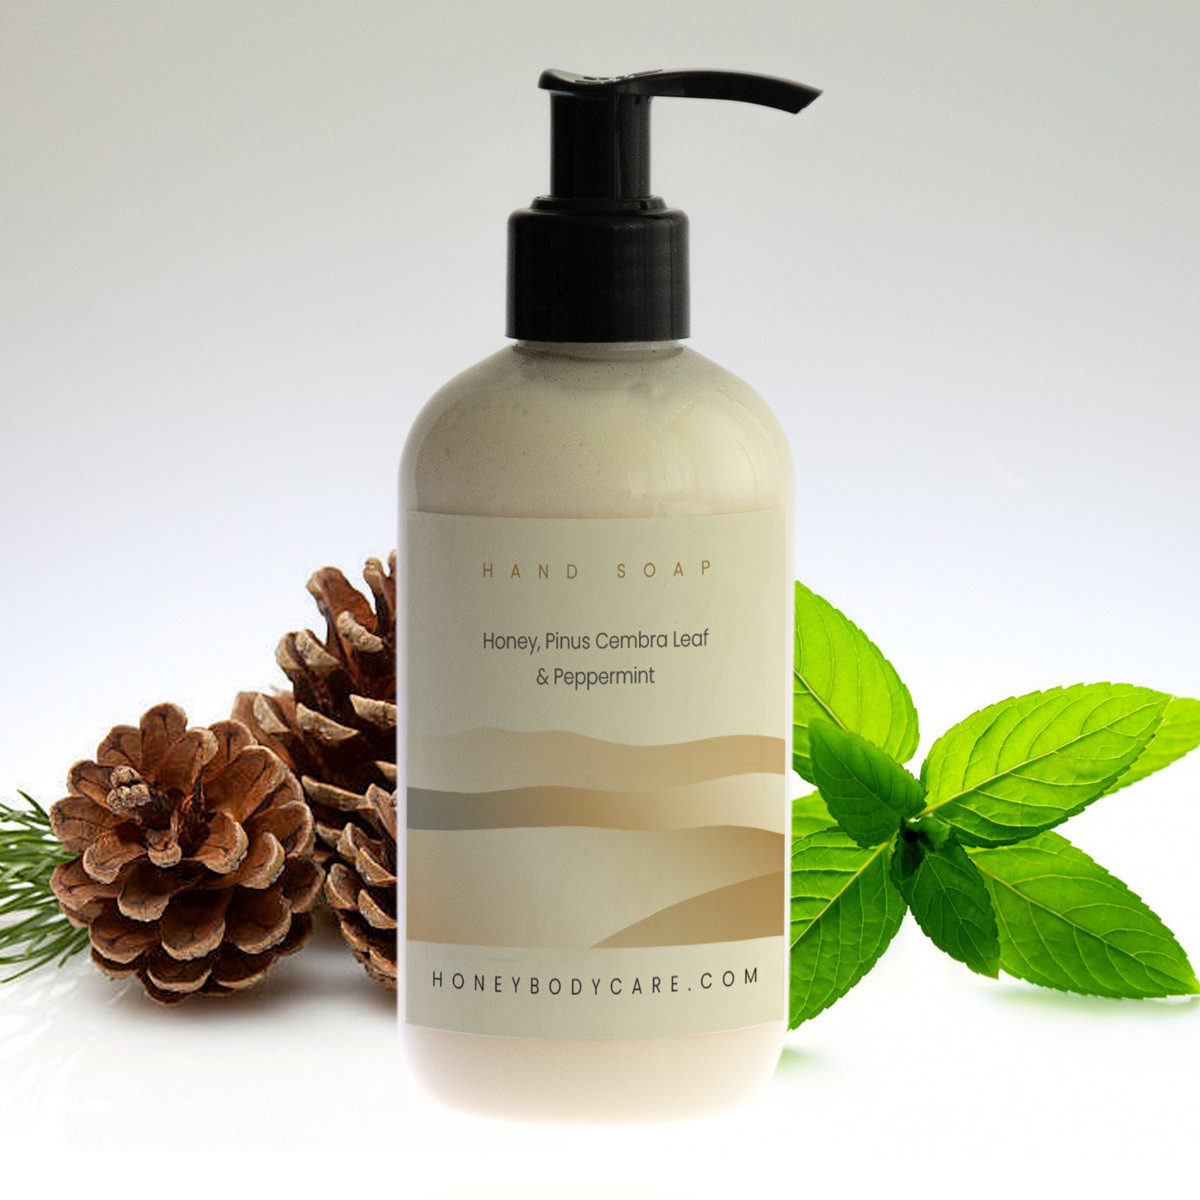 Hand wash Honey, Pinus Cembra and Peppermint